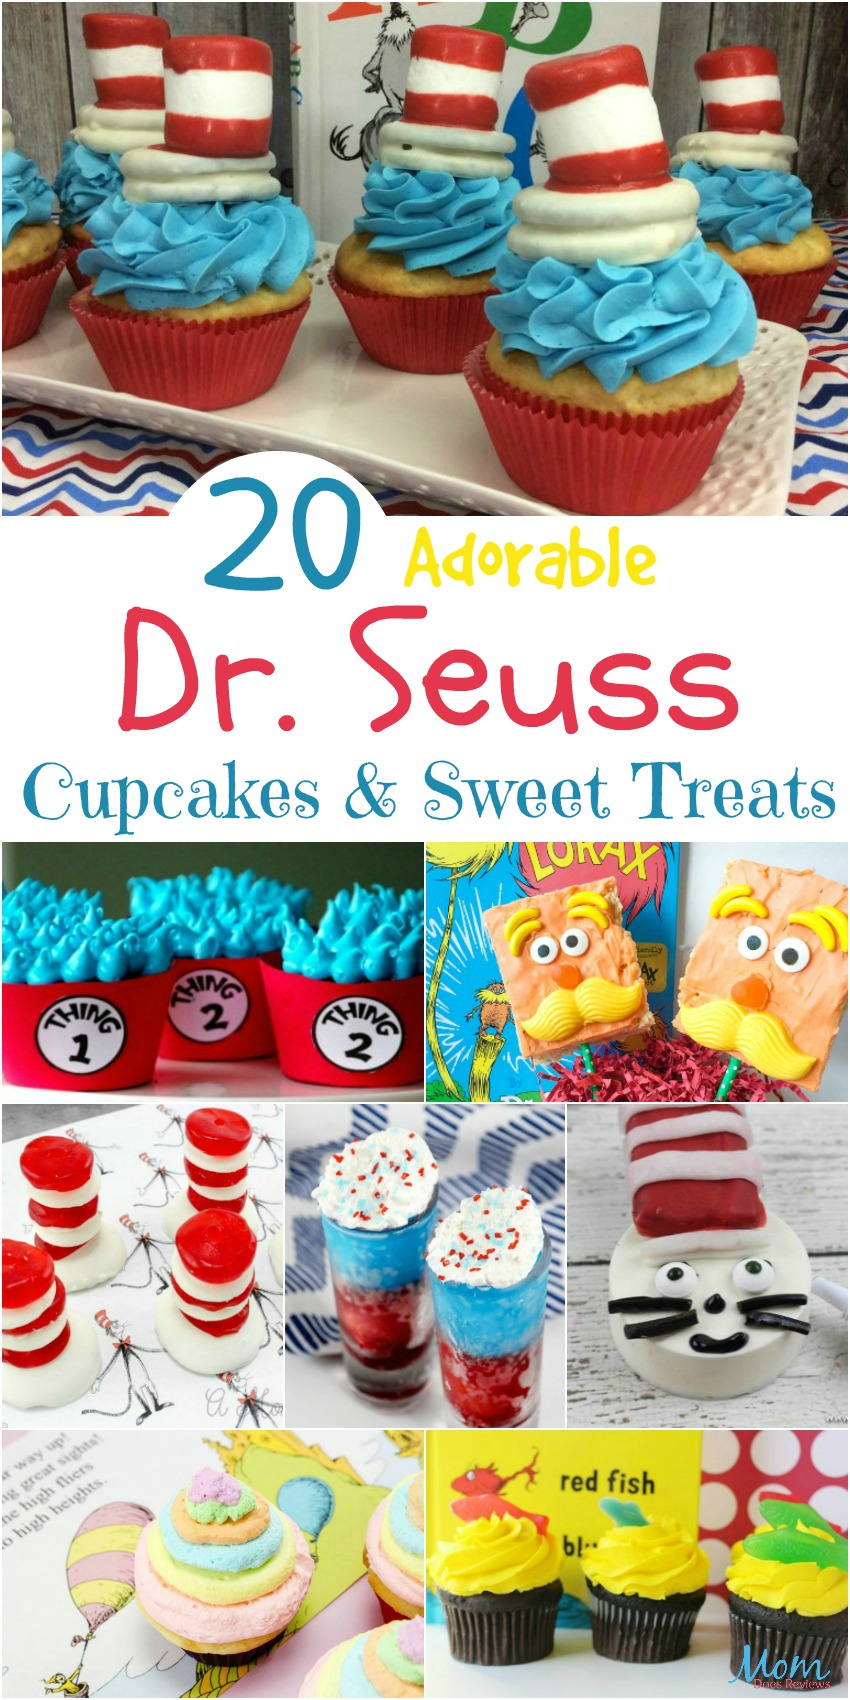 20 Adorable Dr. Seuss Cupcakes, Sweet Treats, and More #sweets #cupcakes #cookies #desserts #drseuss #treats #recipes